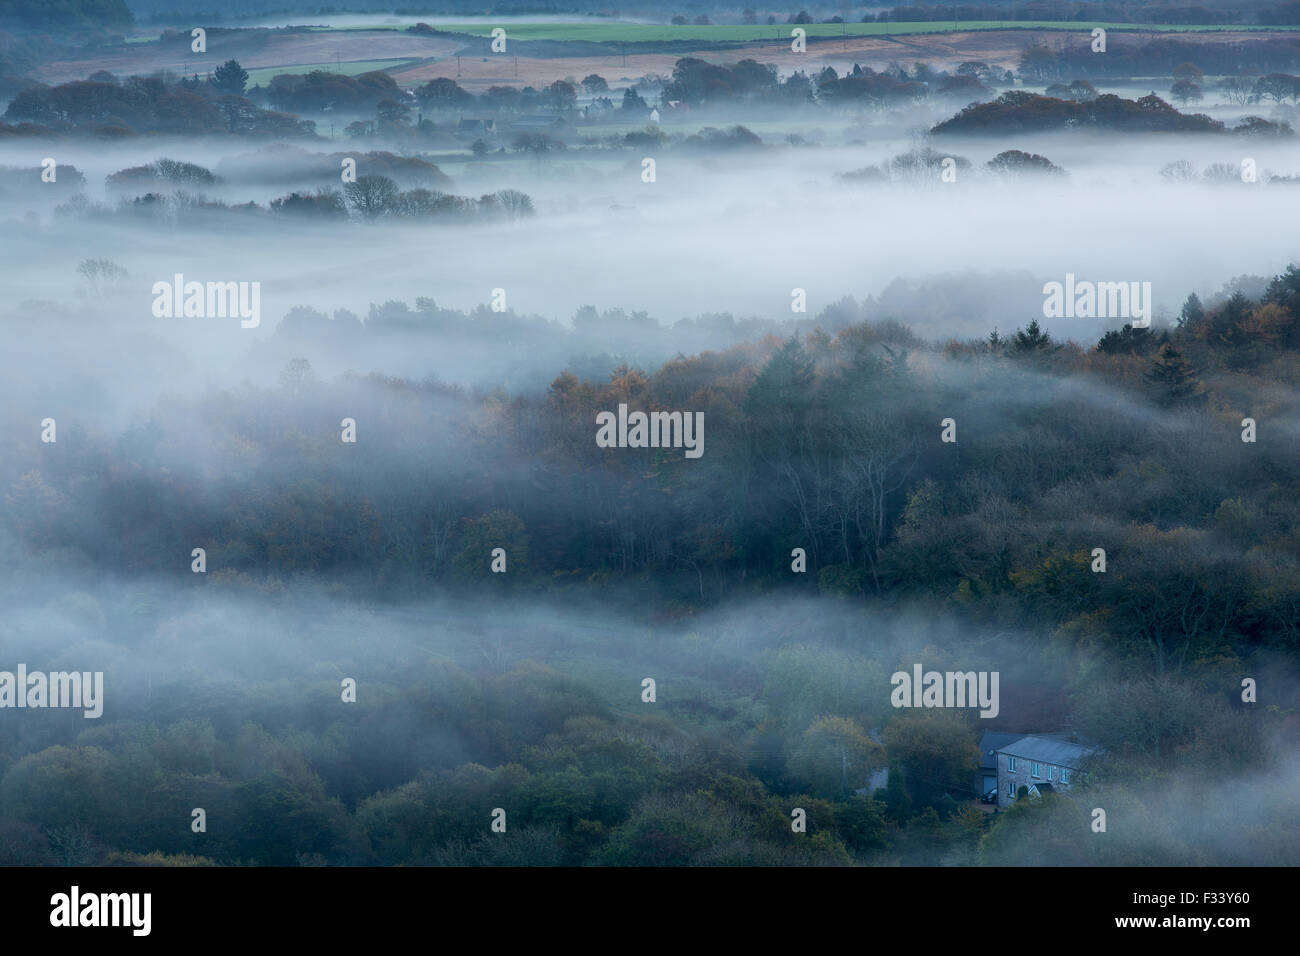 the Isle of Purbeck near Corfe Castle in the mist at dawn, Dorset, England, UK - Stock Image